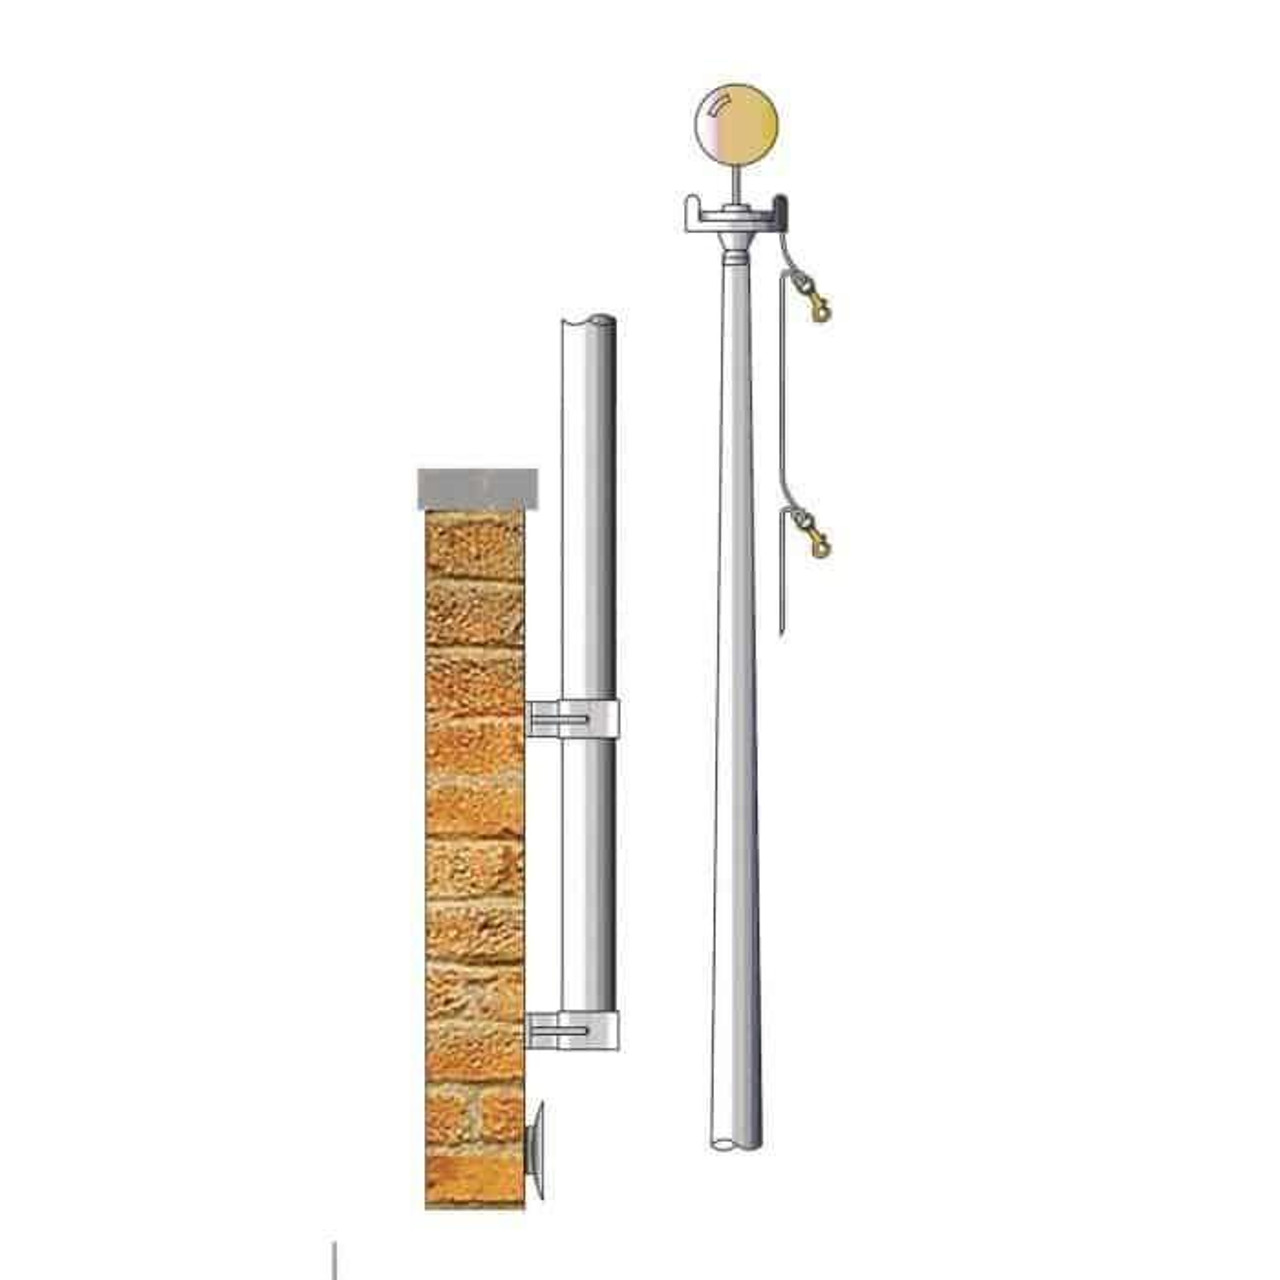 20 Vertical Wall Mounted Flagpole LVWC20